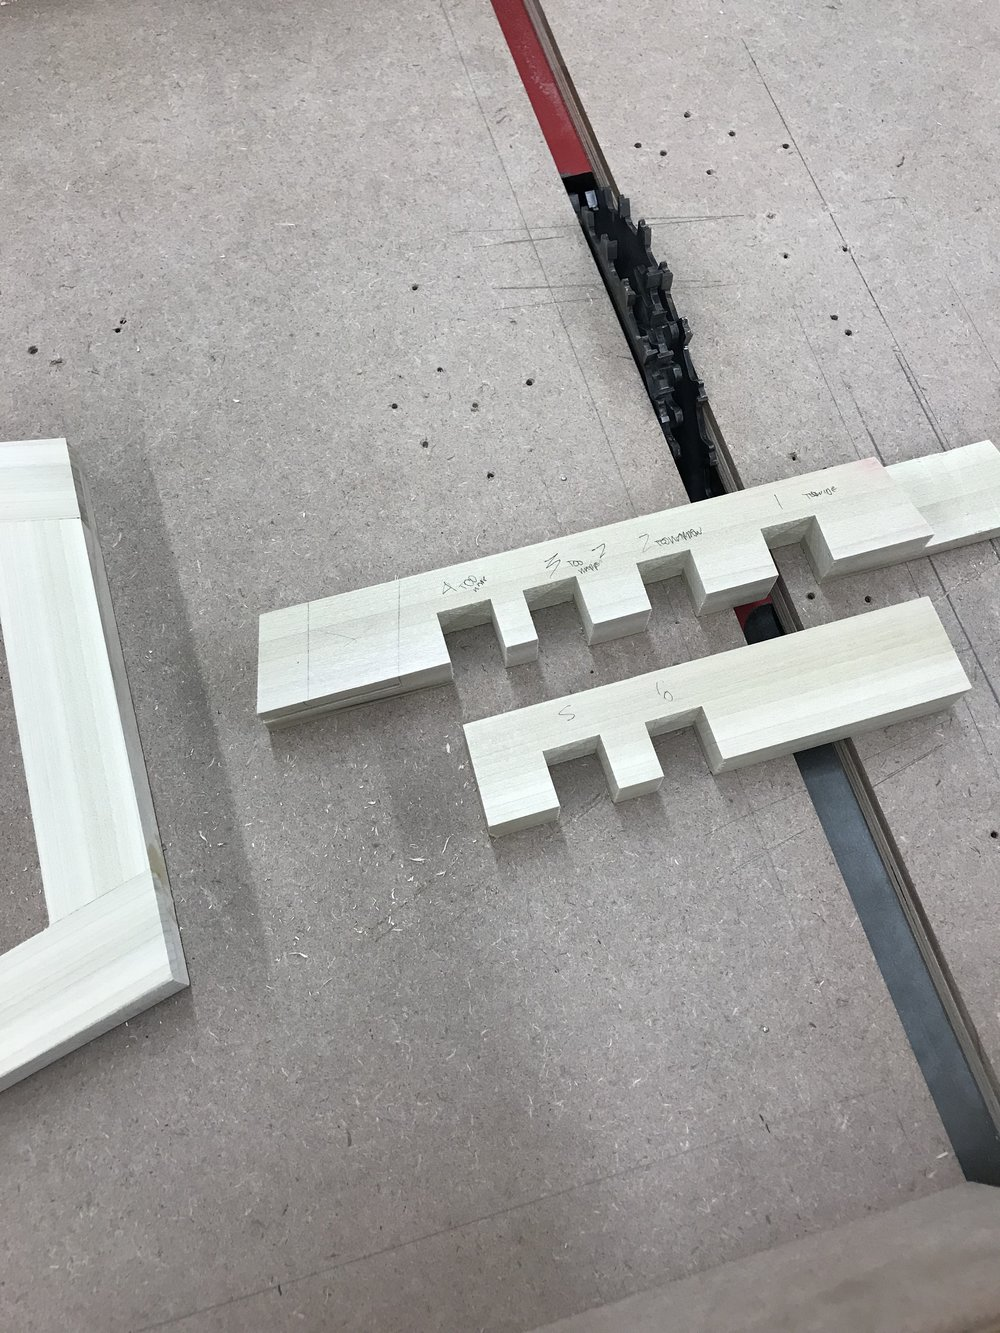 Testing the dato blade thickness to fit the leg supports